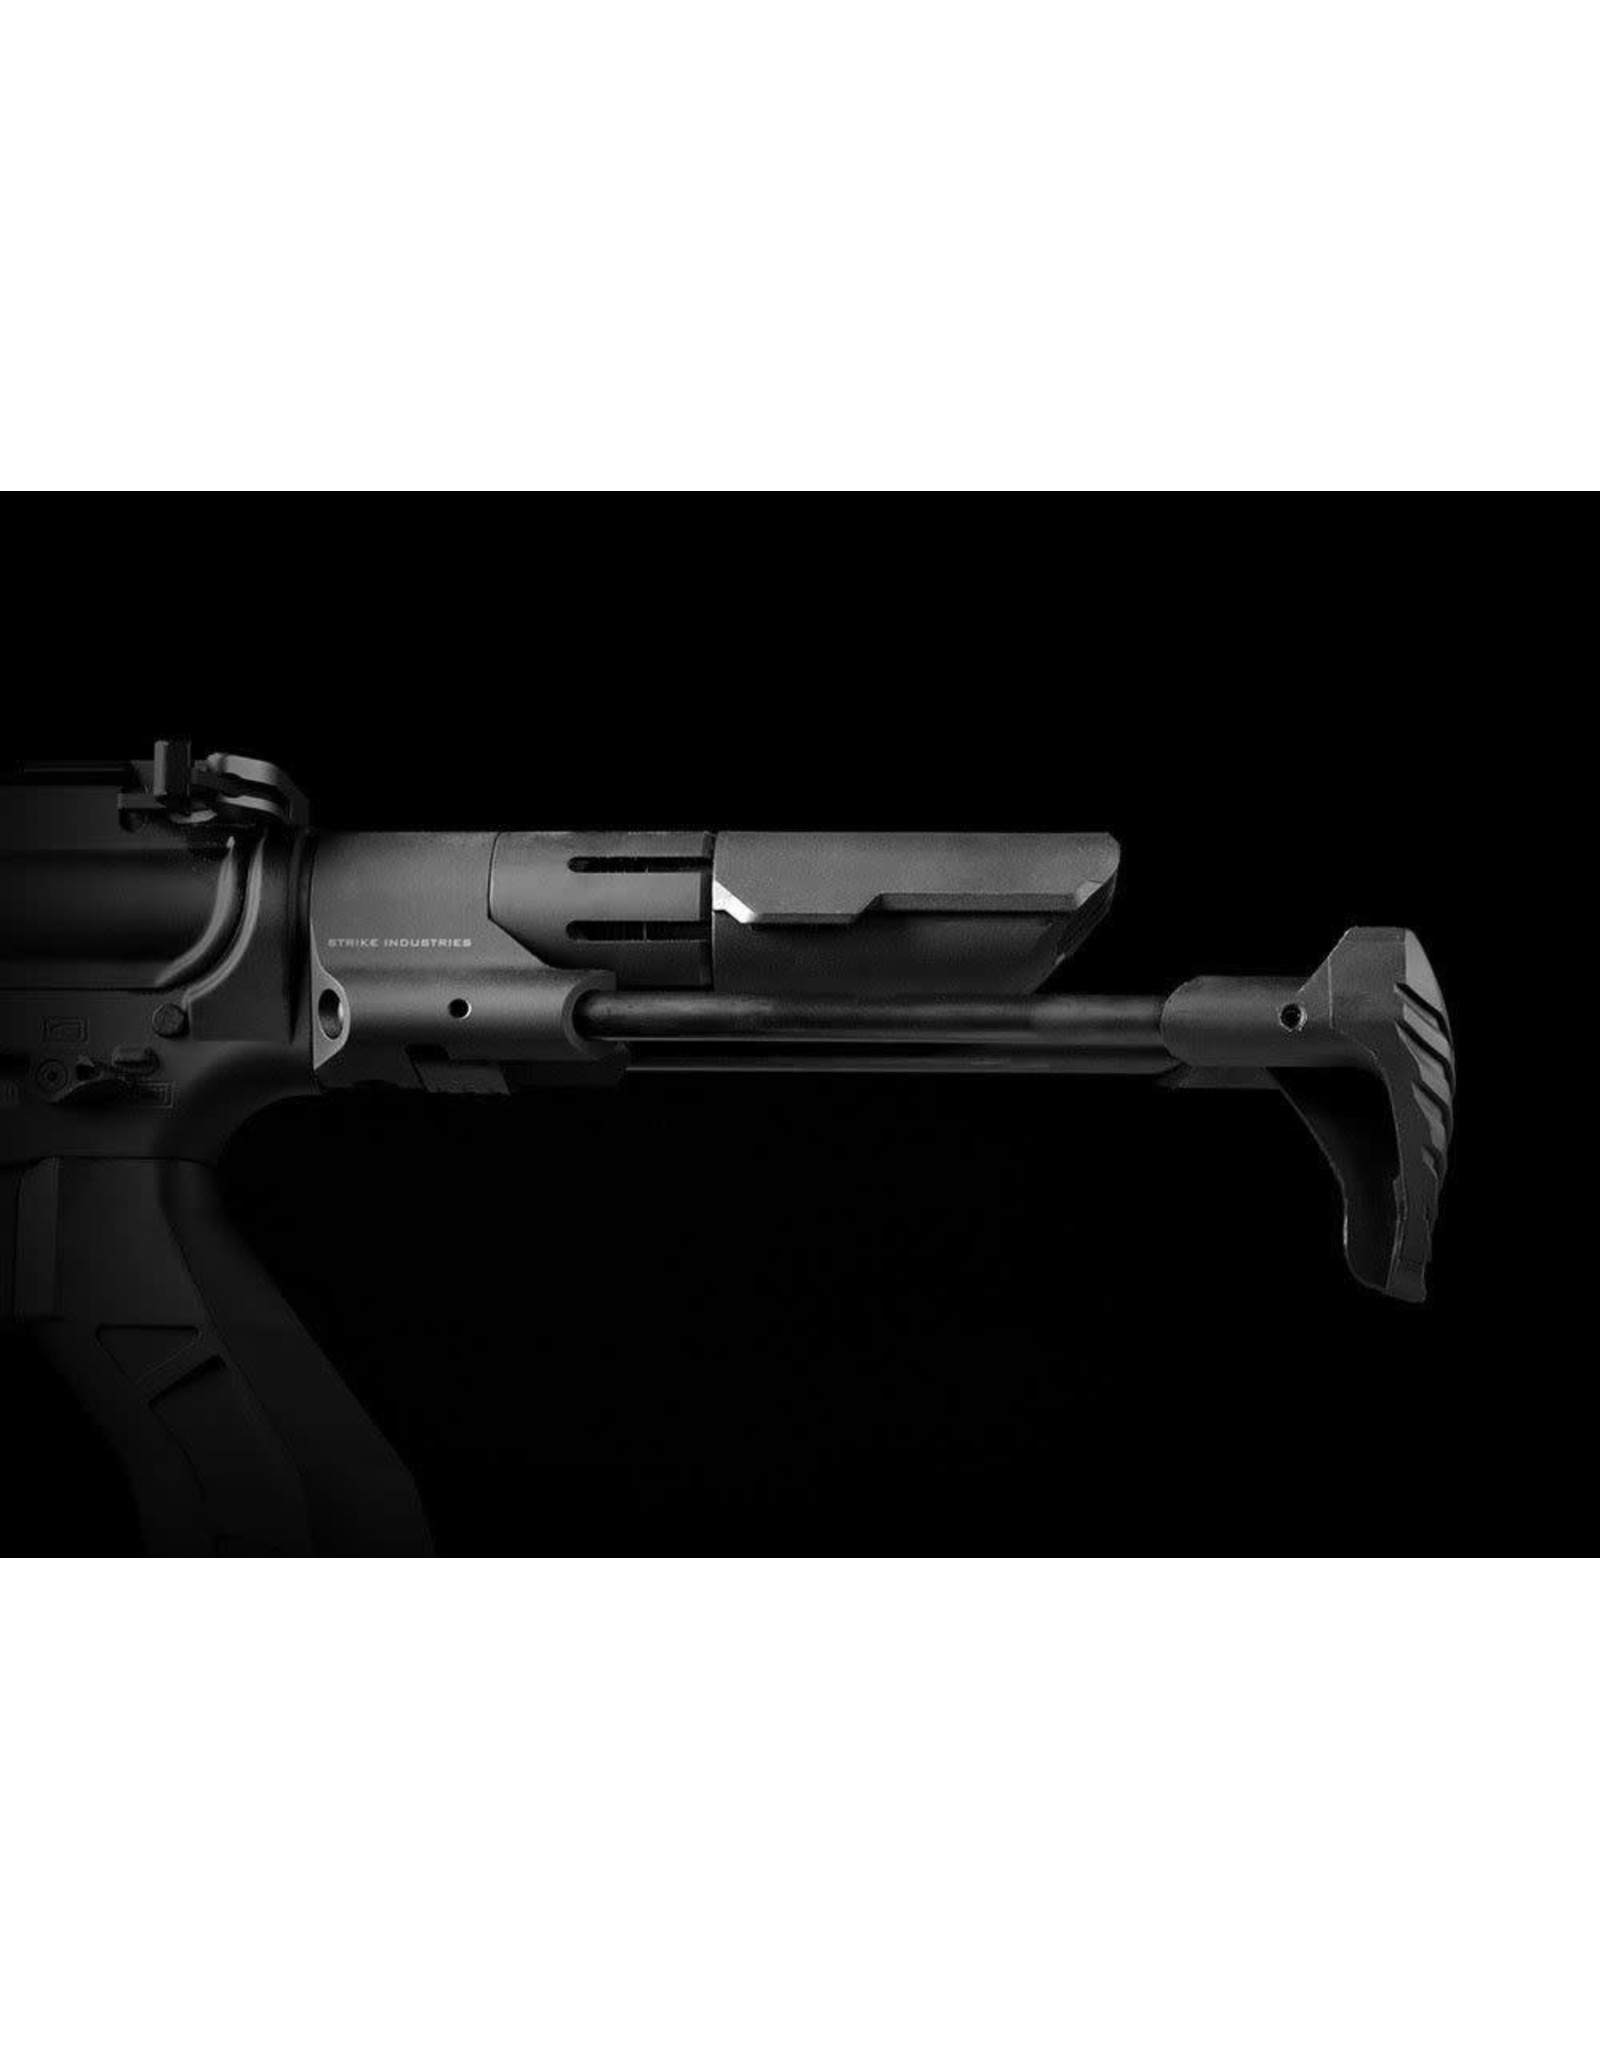 Strike Industries Strike Industries PDW Stock - Black